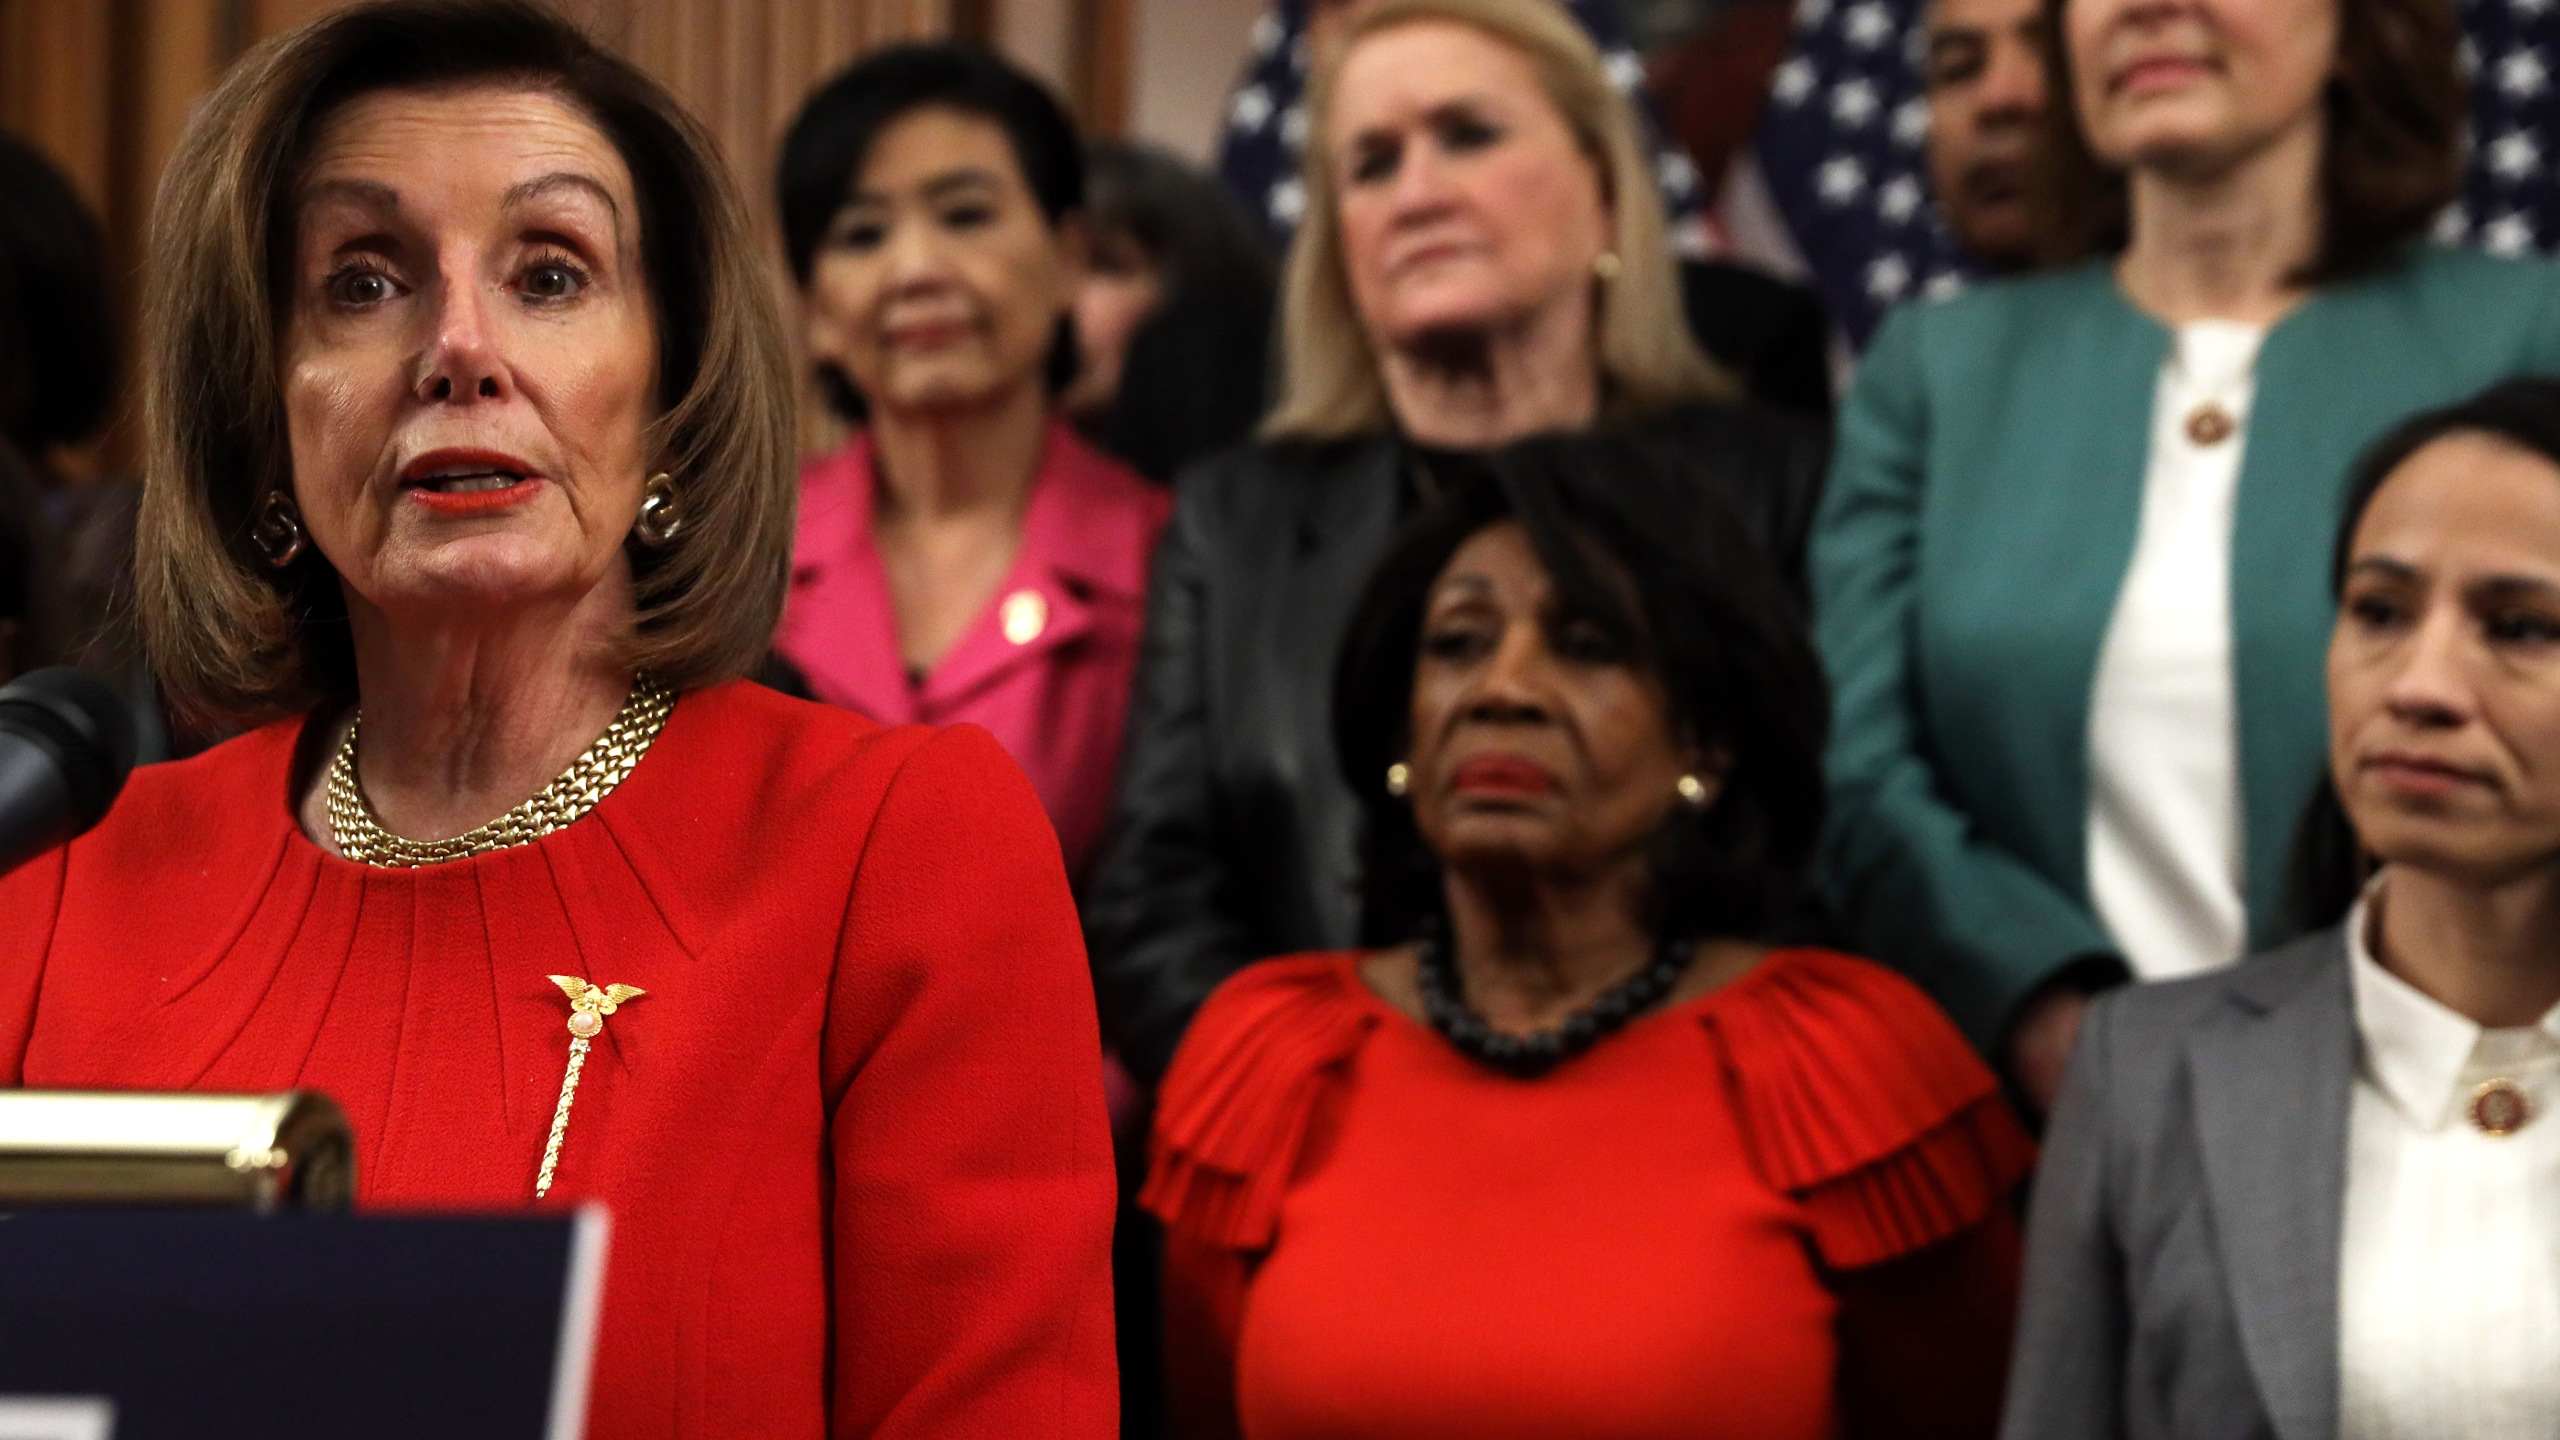 U.S. Speaker of the House Rep. Nancy Pelosi (D-CA) speaks as other House Democrats look on during an event at the Rayburn Room of the U.S. Capitol Dec. 19, 2019, in Washington, D.C. (Credit: Alex Wong/Getty Images)